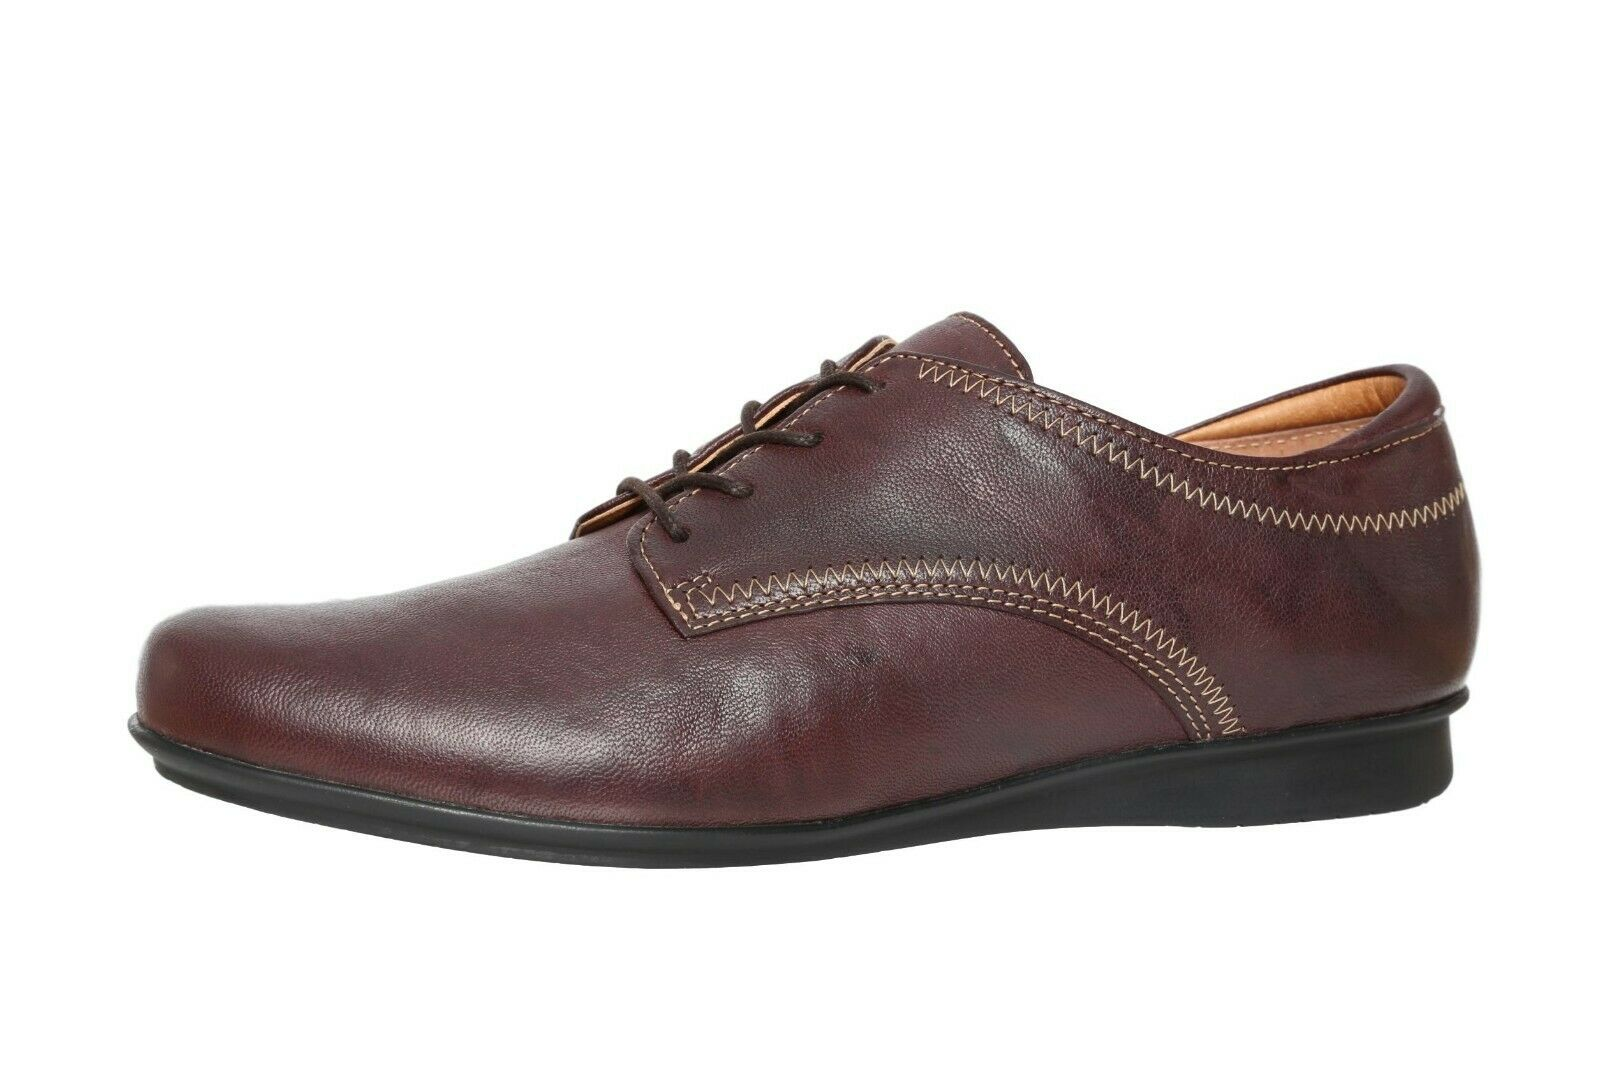 Taos Footwear Ideal Brown Leather Lace Up Oxfords Women's N5617 Size 8-8.5 M